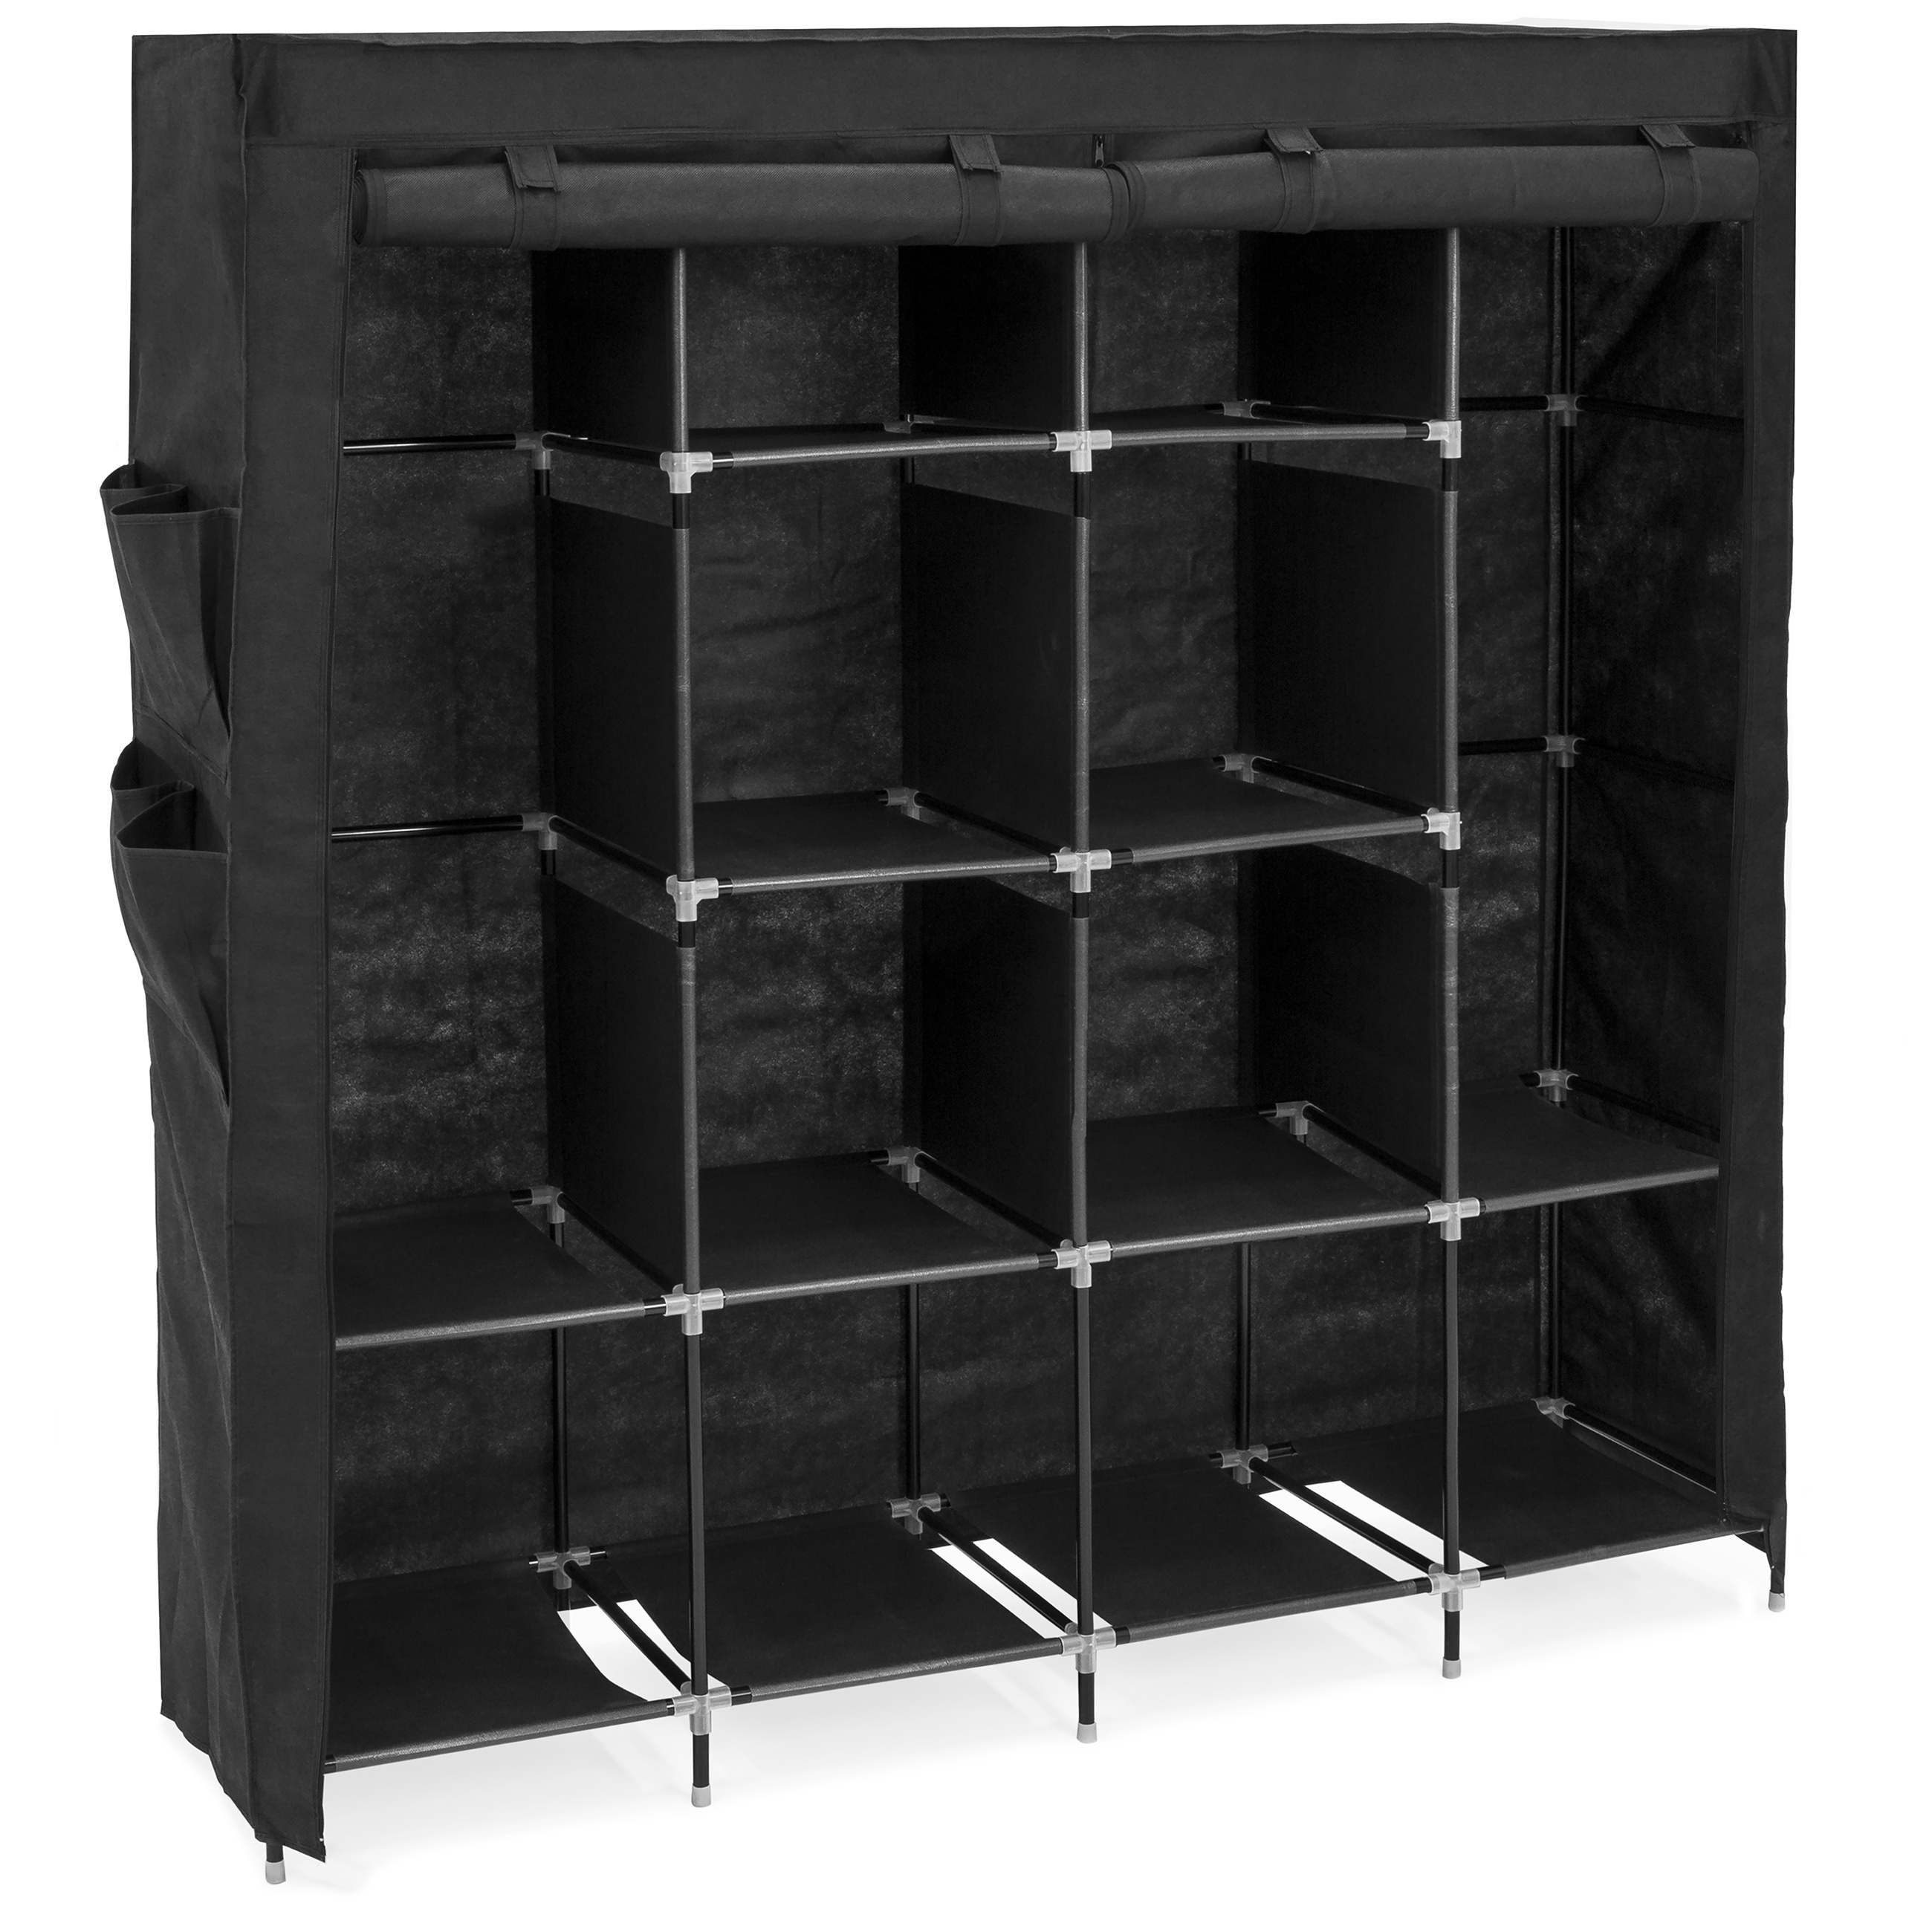 Best Choice Products 12-Shelf Portable Fabric Home Organizer Wardrobe Storage Closet System - Black